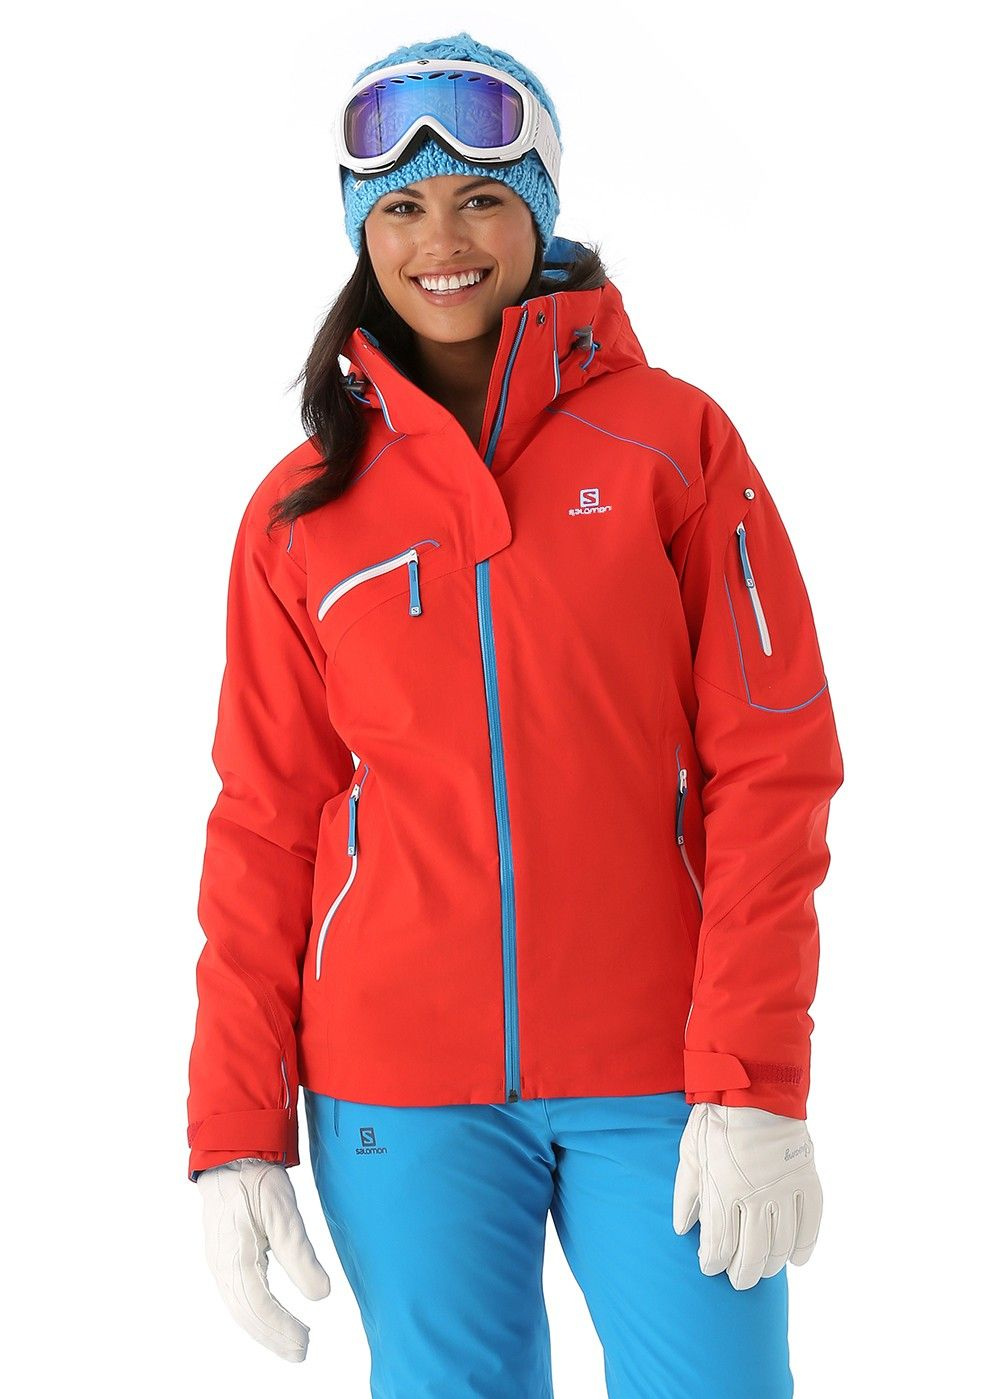 Salomon Women's Speed Jacket (Poppy) from